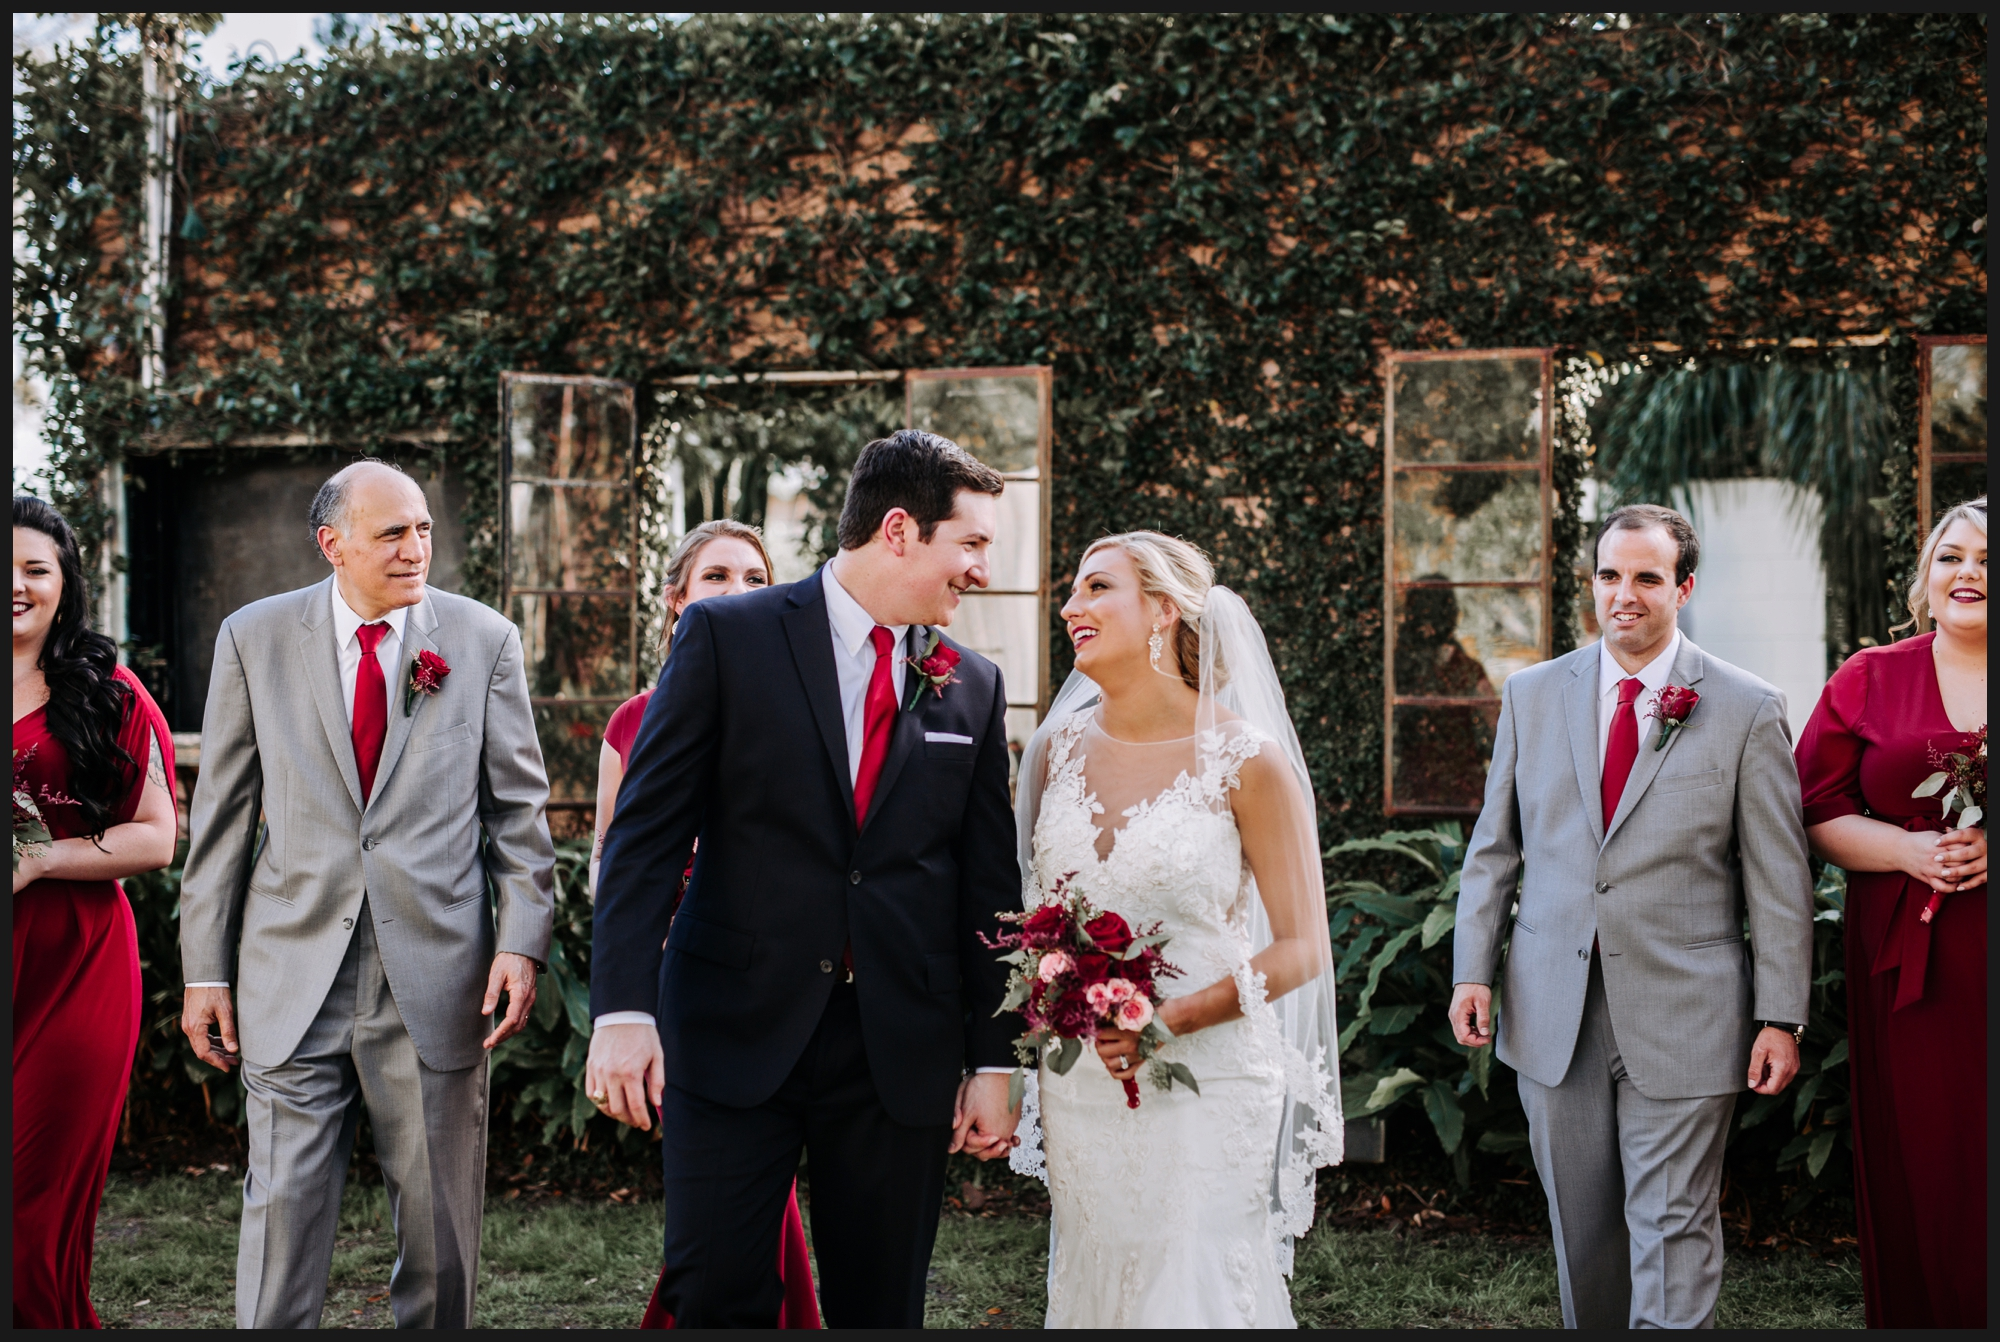 MitchandKatieOrlandoWeddingPhotographer_0081.jpg